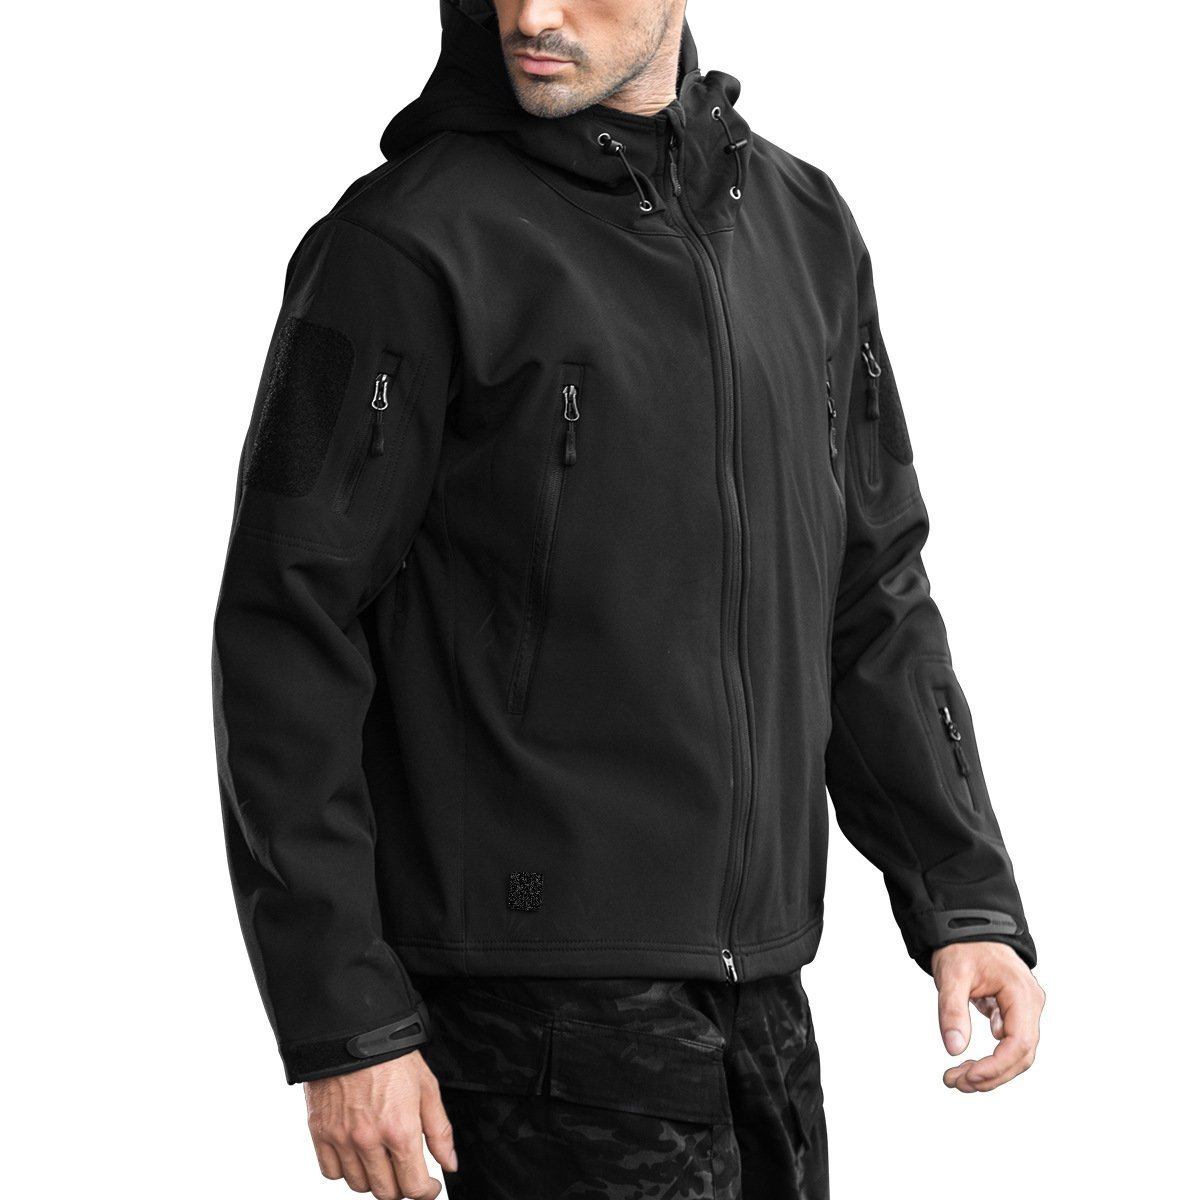 FREE SOLDIER Men's Outdoor Waterproof Soft Shell Hooded Military Tactical Jacket (Black, S)